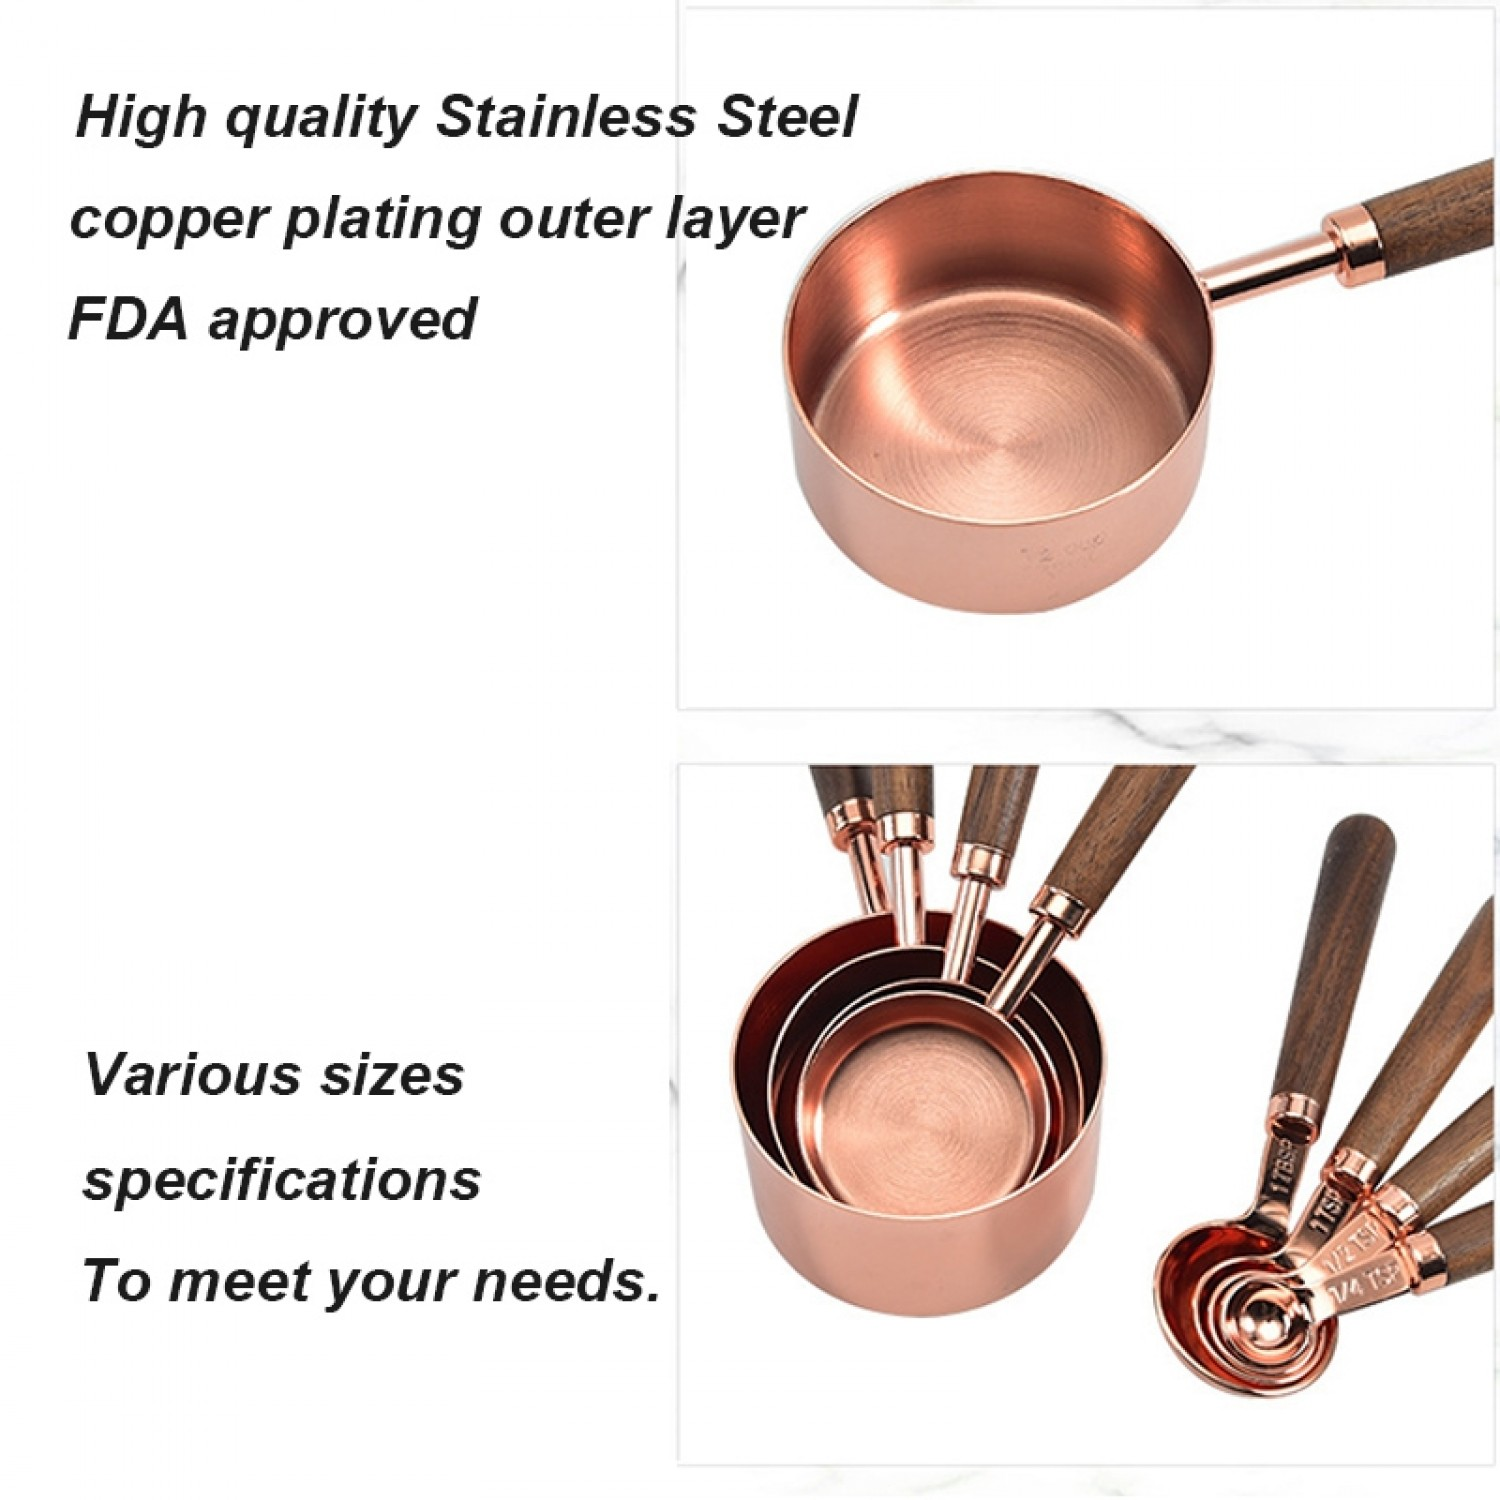 4pcs Kitchen Baking Accessories Wooden Handle Copper plating Stainless Steel Measuring Cups